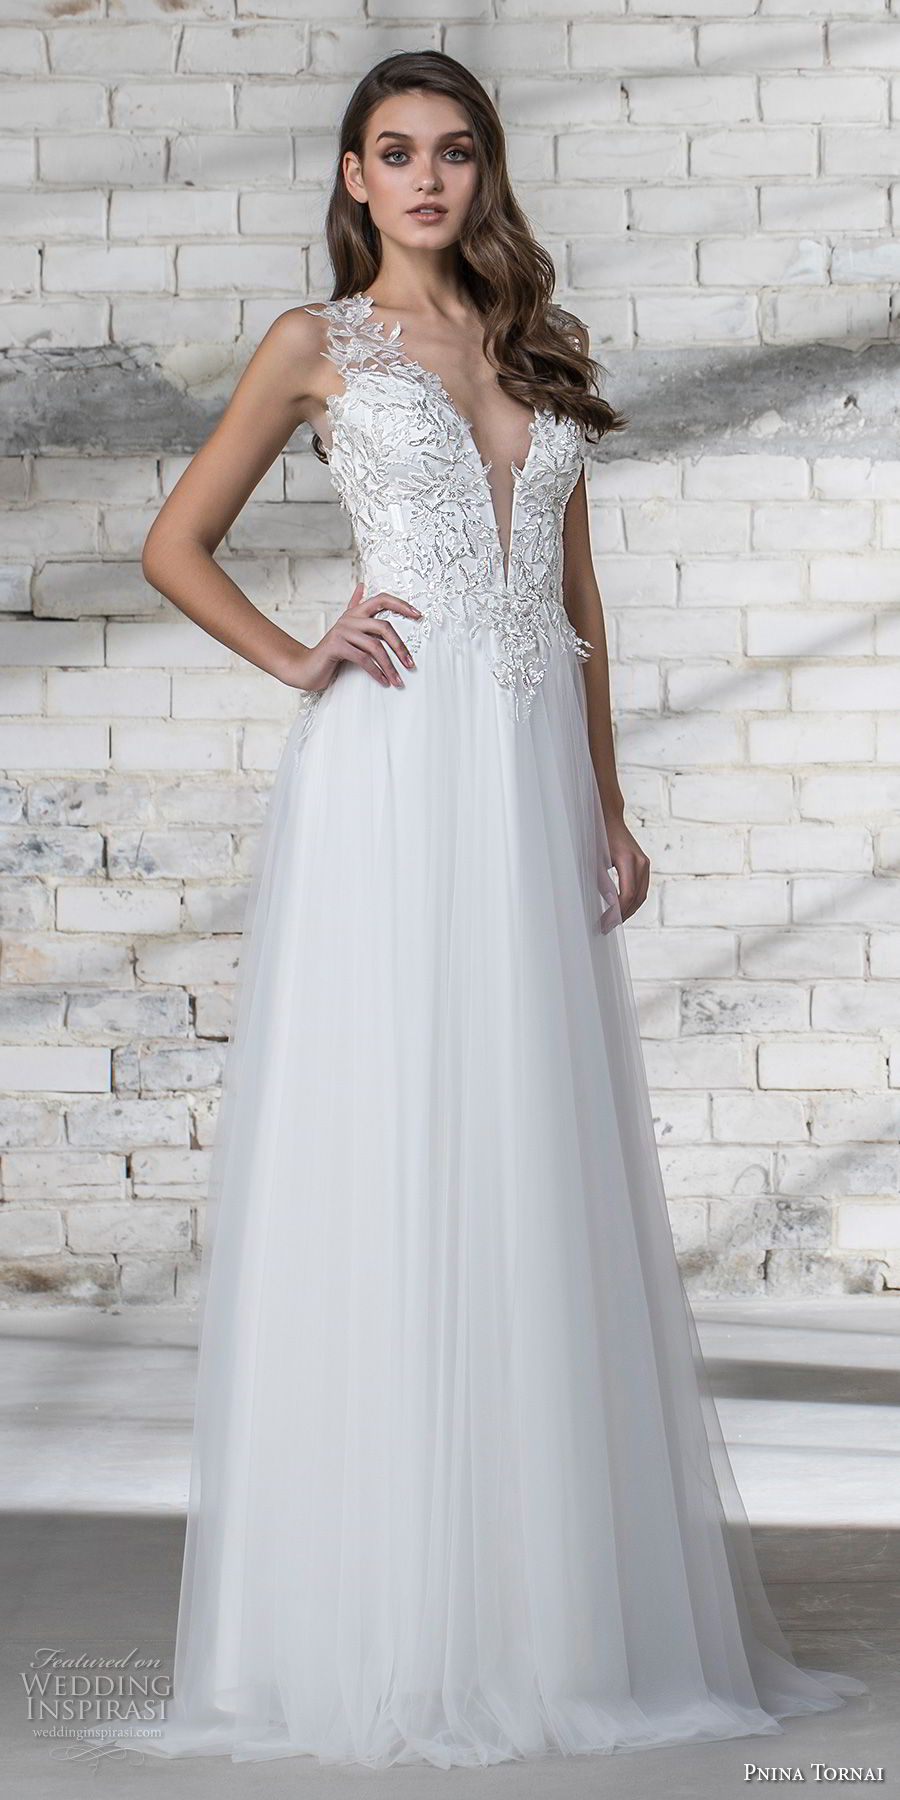 pnina tornai 2019 love bridal sleeveless thick strap deep plunging v neck heavily embellished bodice romantic modified a line wedding dress open back panel chapel train (7) lv